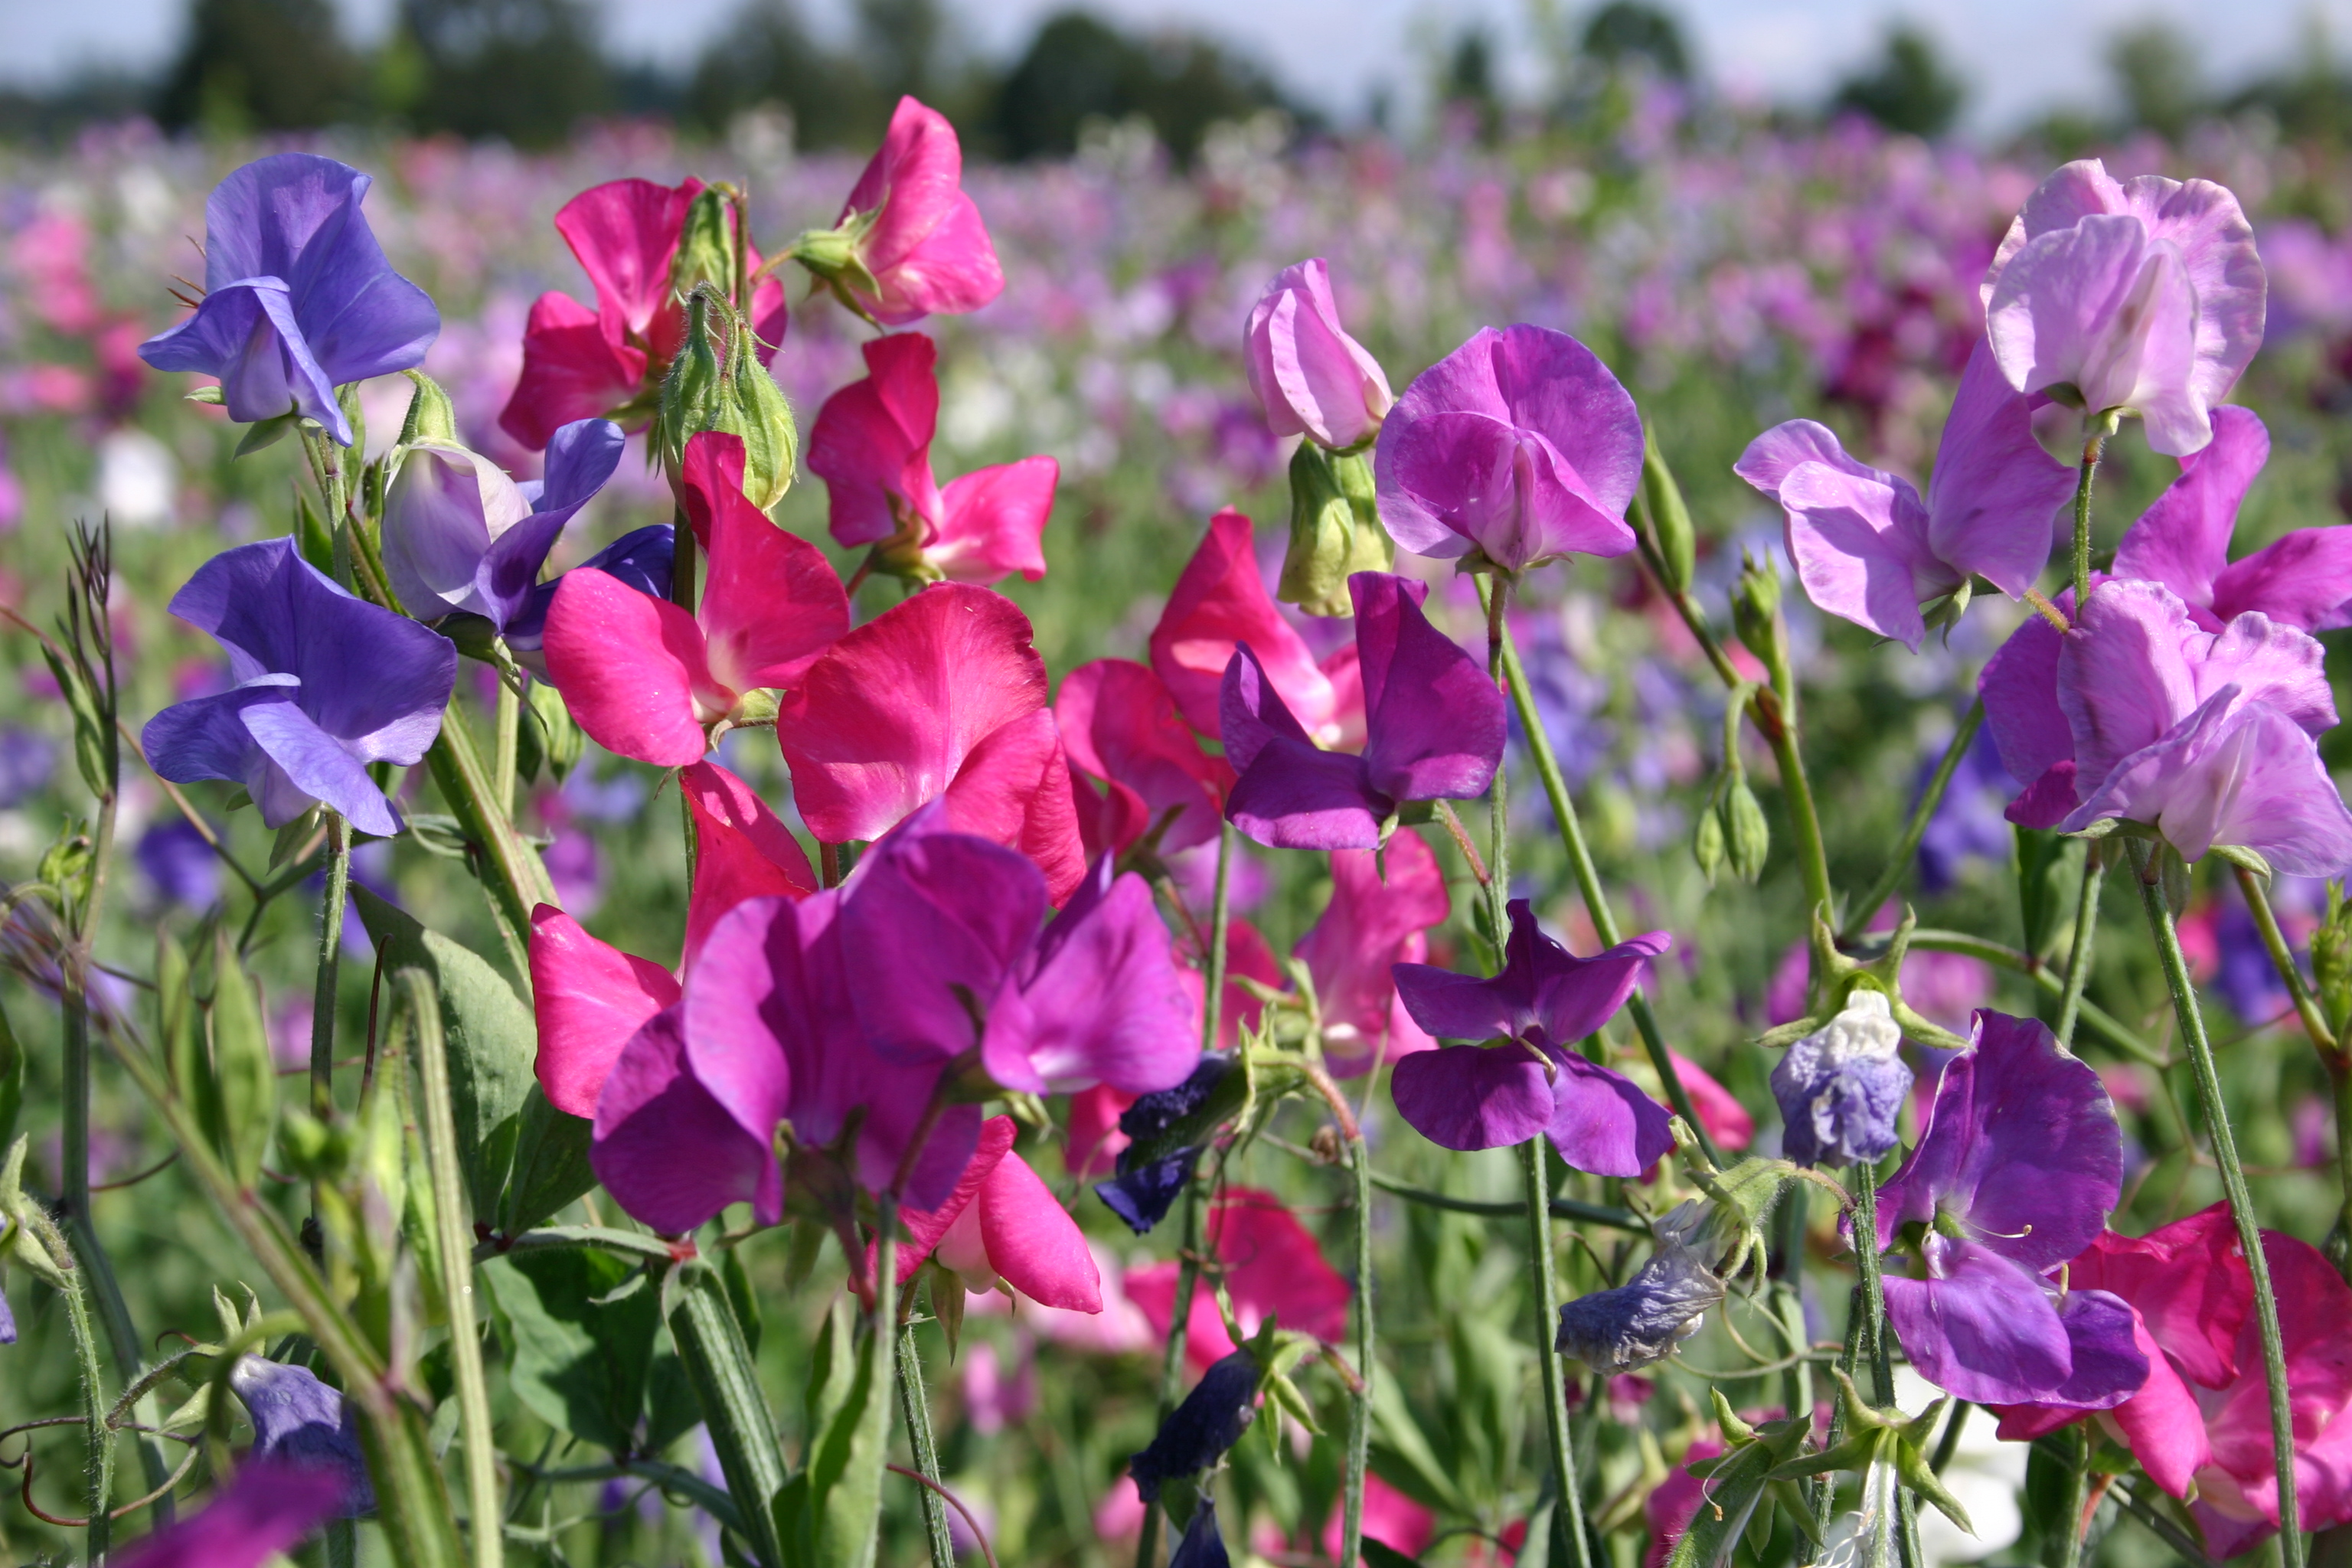 silver falls seed company  pea  sweet perennial mix, Natural flower